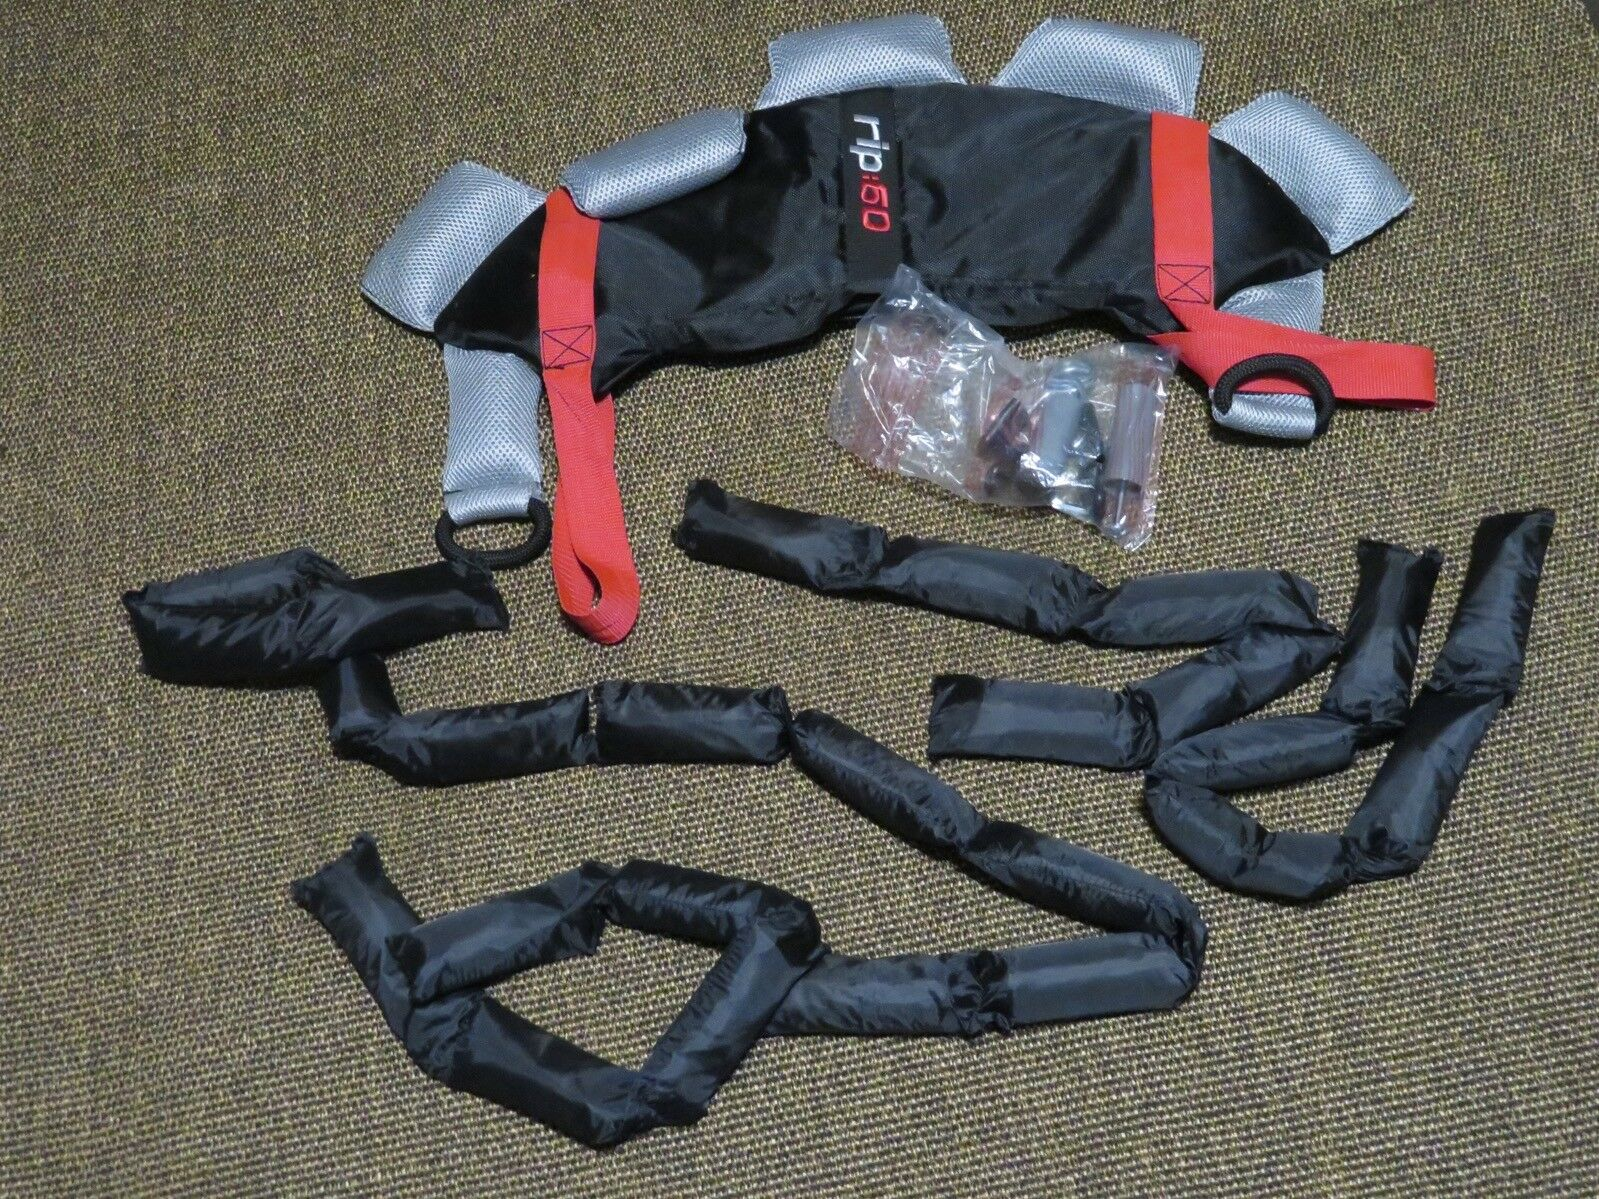 New Rip 60 Padded Power Pack Weight System Adjusts From 5 to 20 Lb.